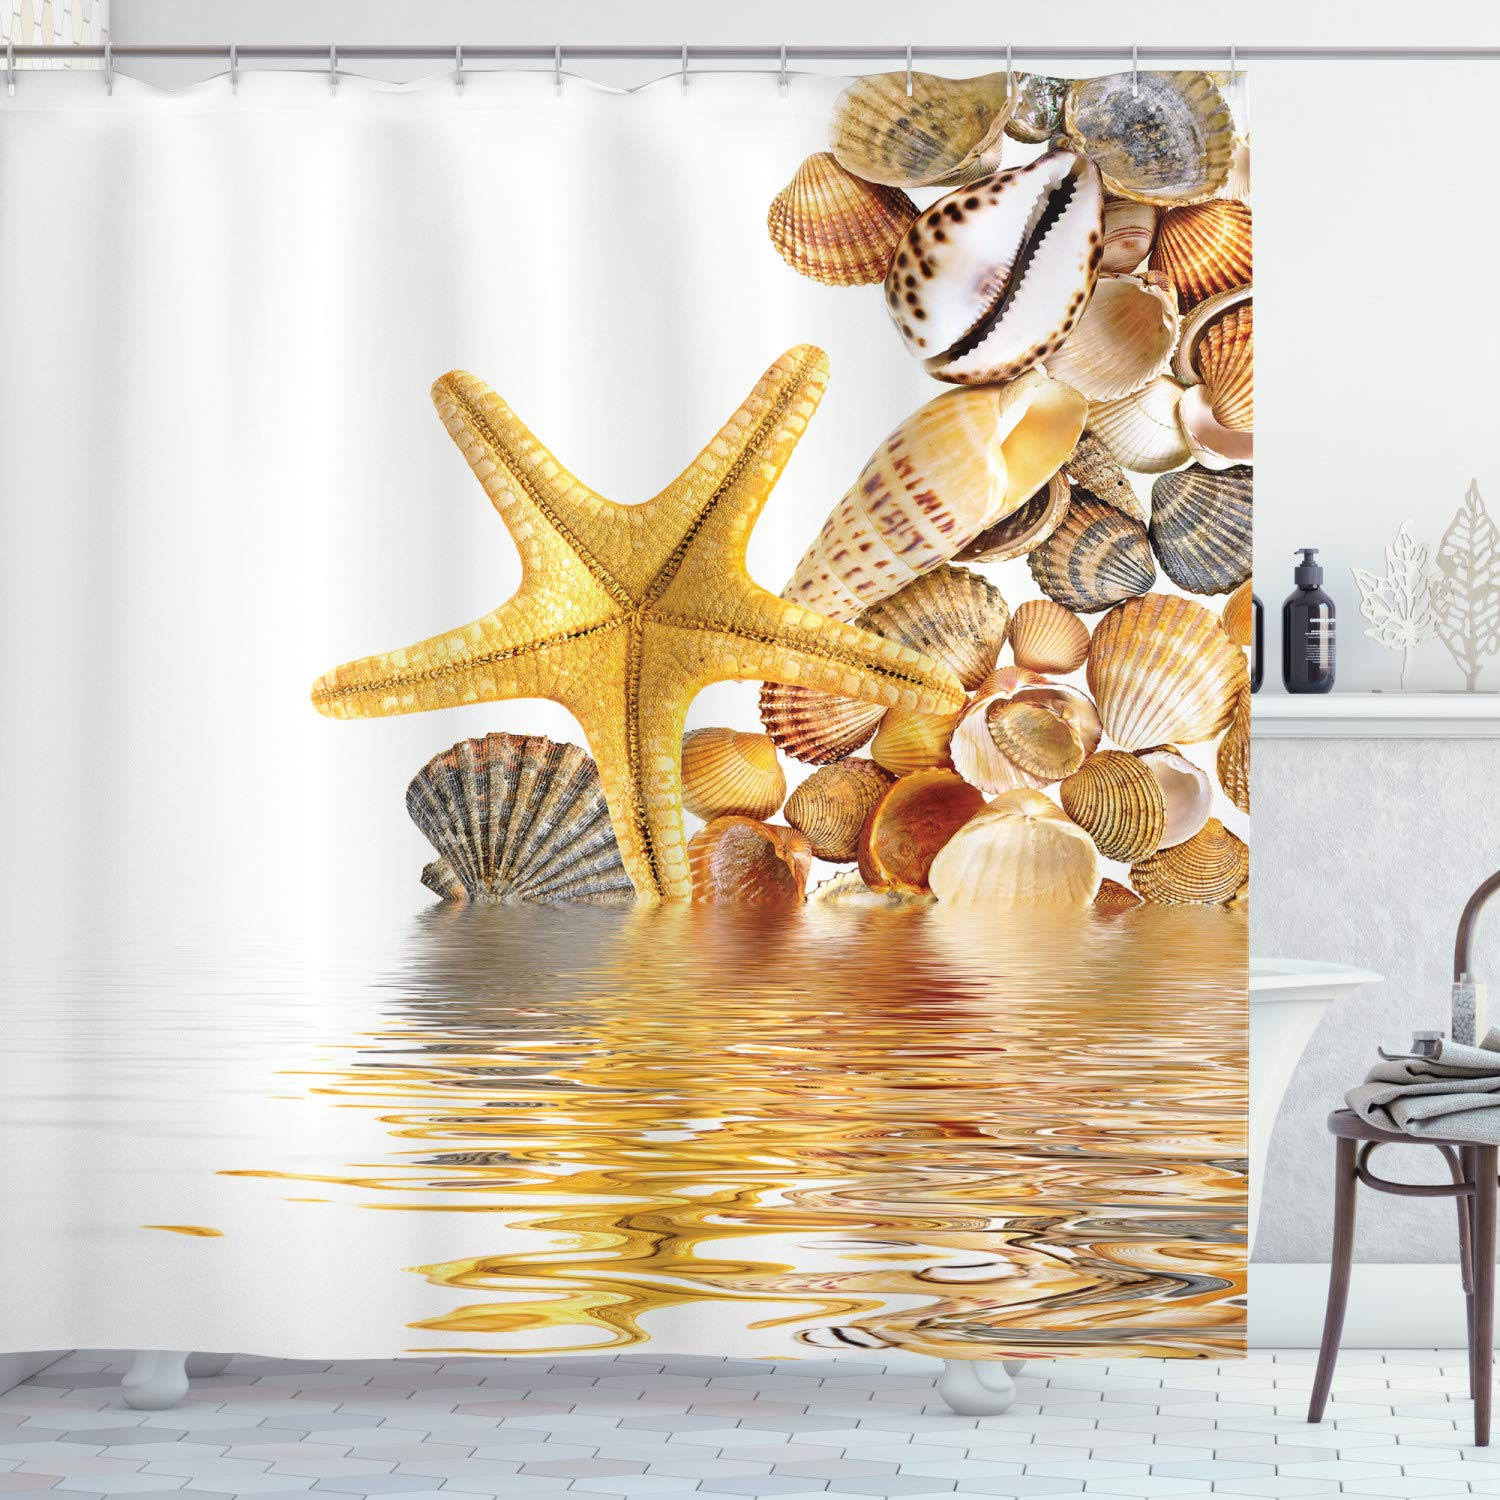 Ambesonne Seashells Shower Curtain, Shells and Starfish Reflection Water Golden Yellow Spa Clear Beach Theme, Fabric Bathroom Decor Set with Hooks, 70 Inches, Earth Yellow Cream